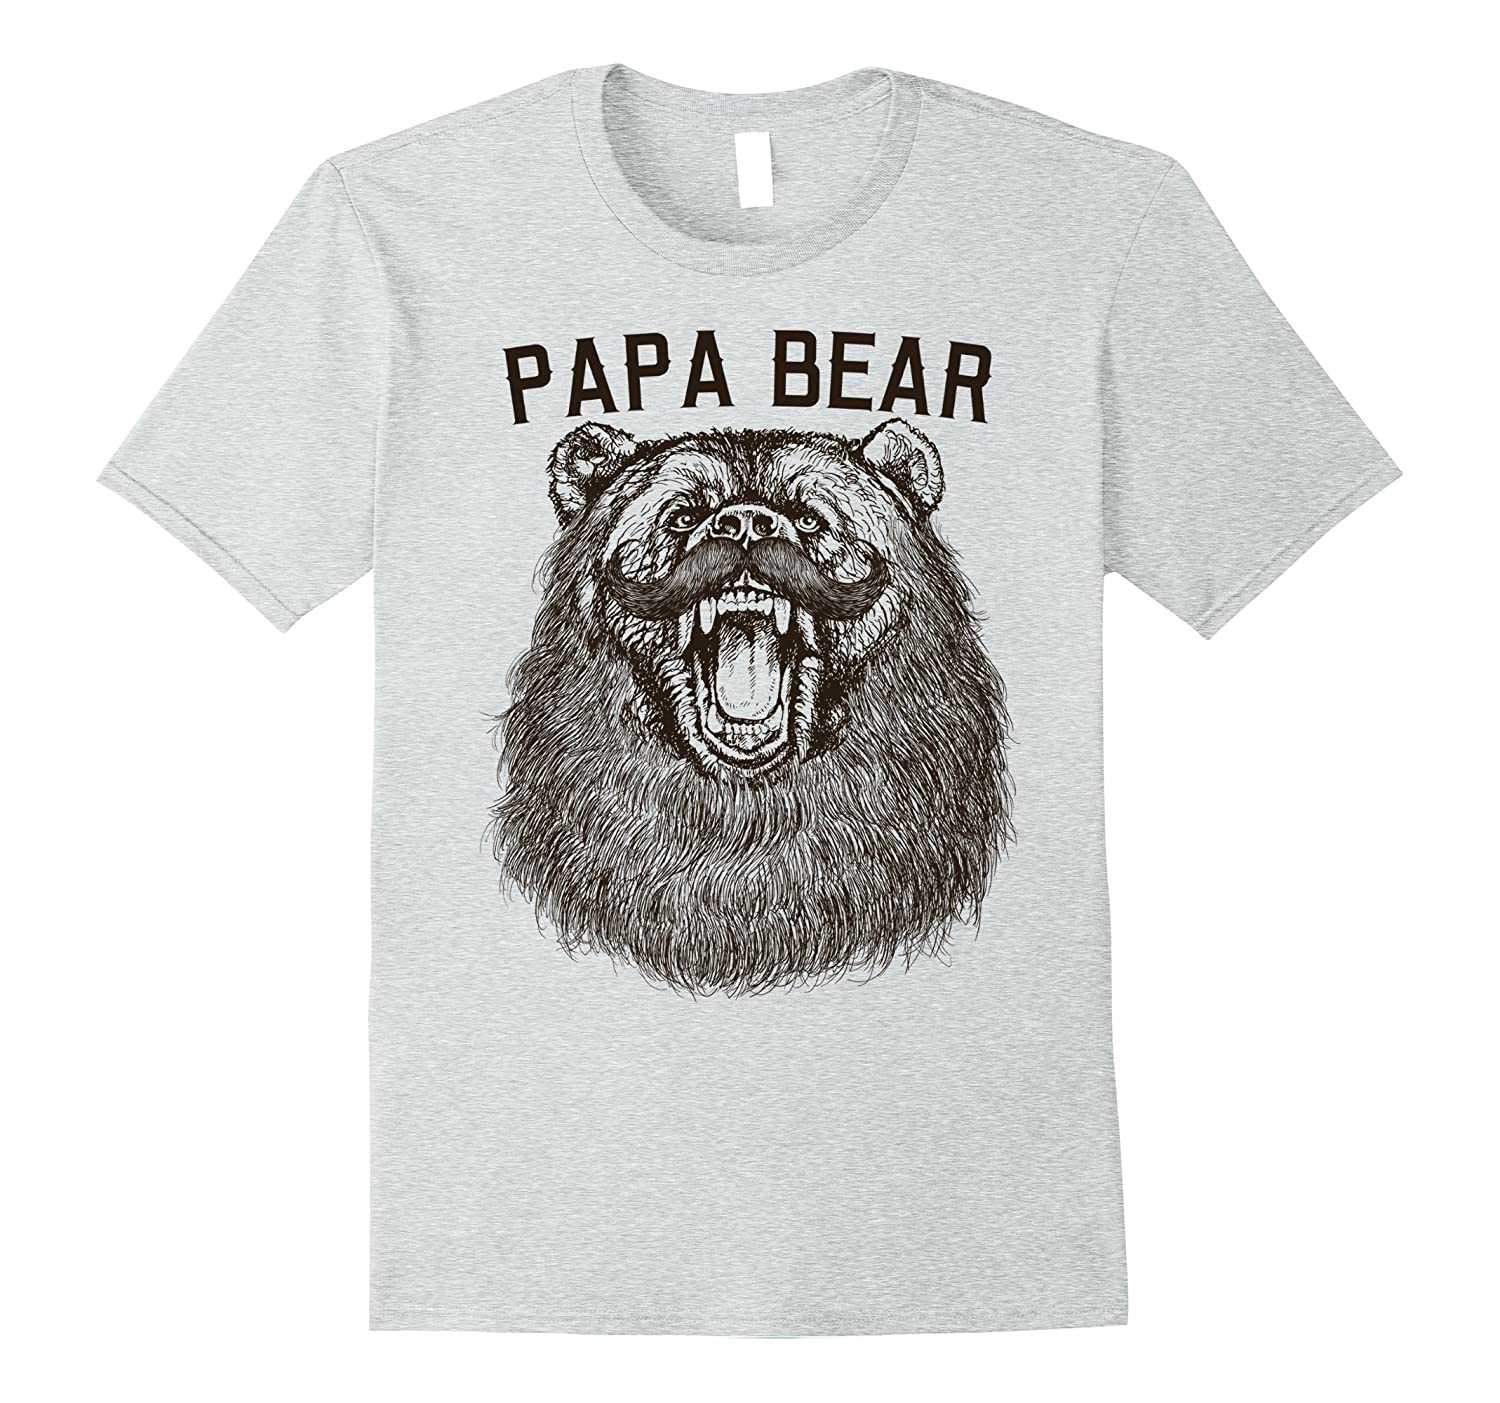 Mens Papa Bear Mustache Grizzly Vintage Graphic T-Shirt-ah my shirt one gift